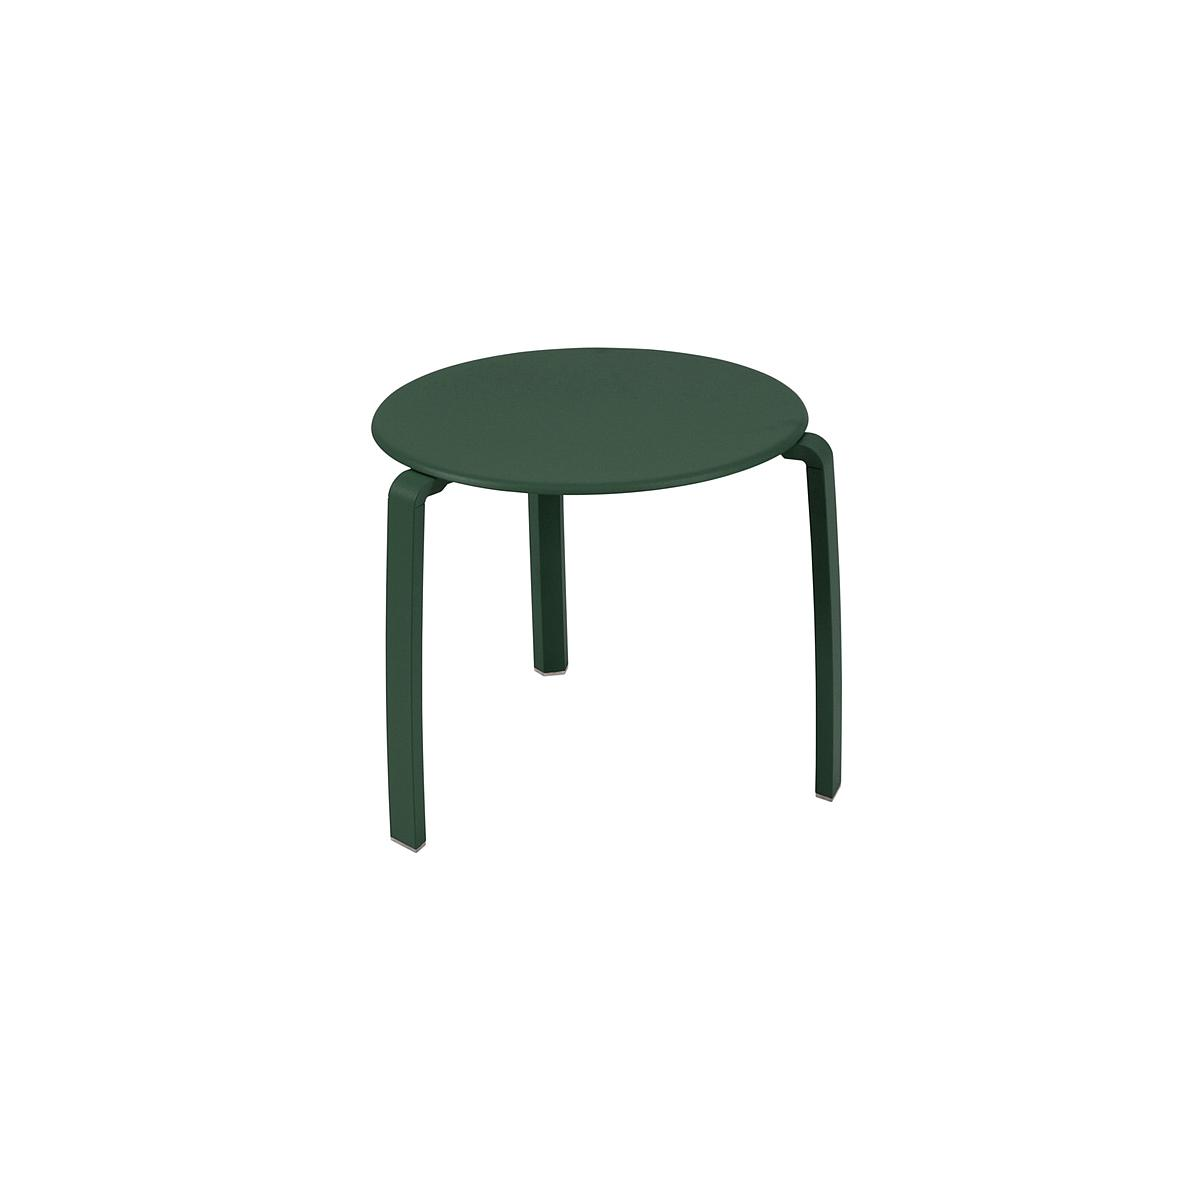 ALIZE by Fermob Table basse Vert cèdre